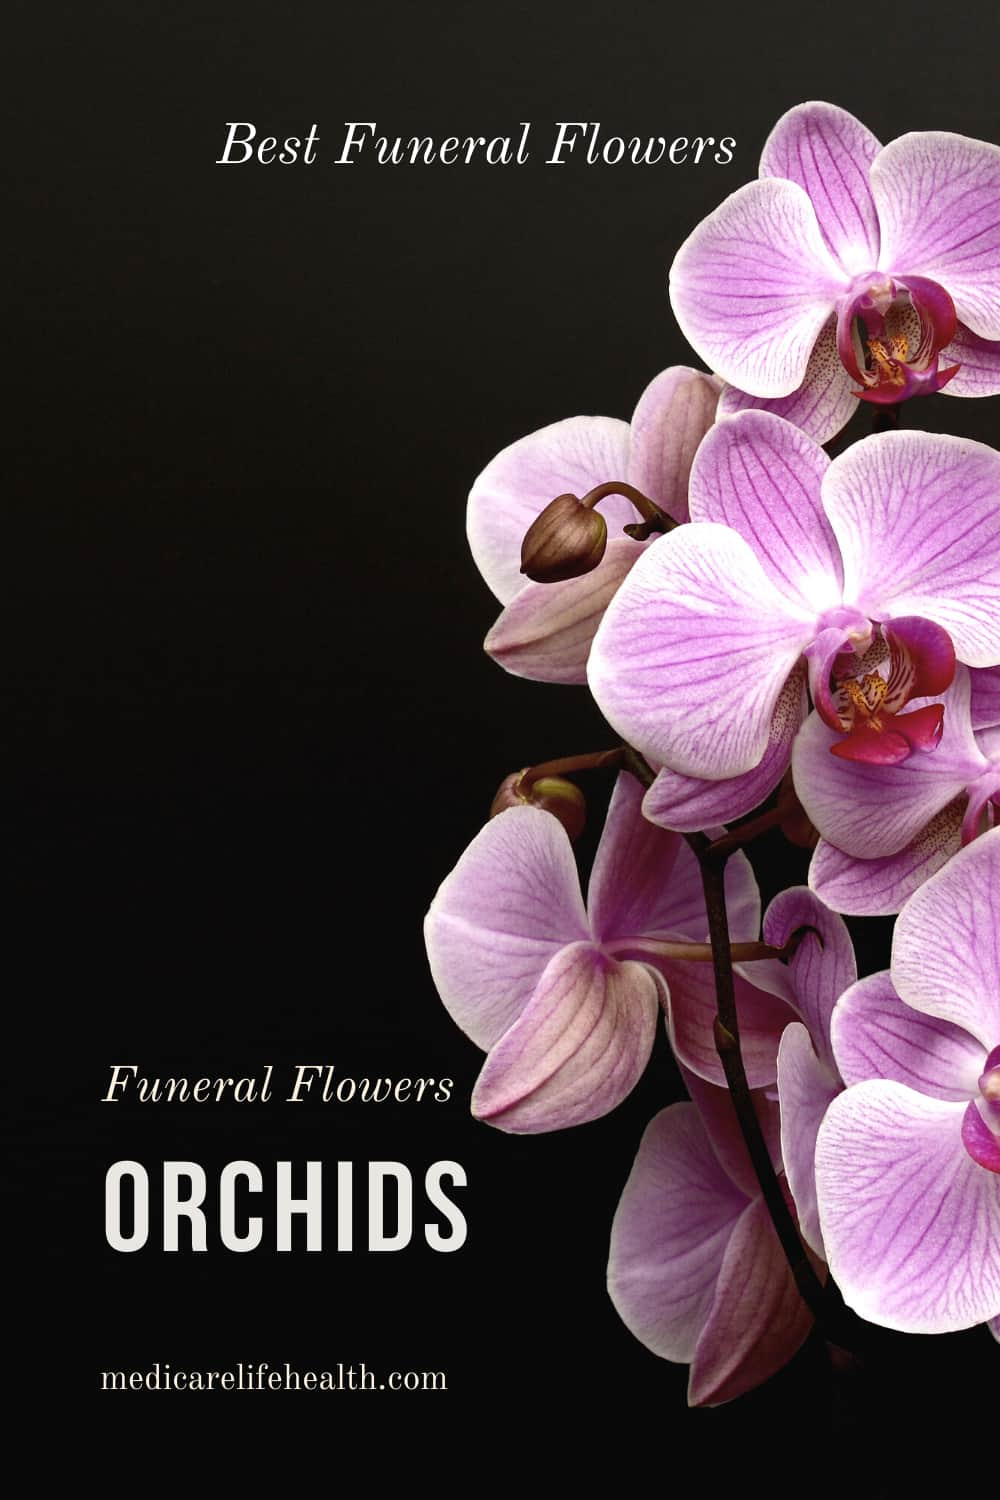 orchids best funeral flowers